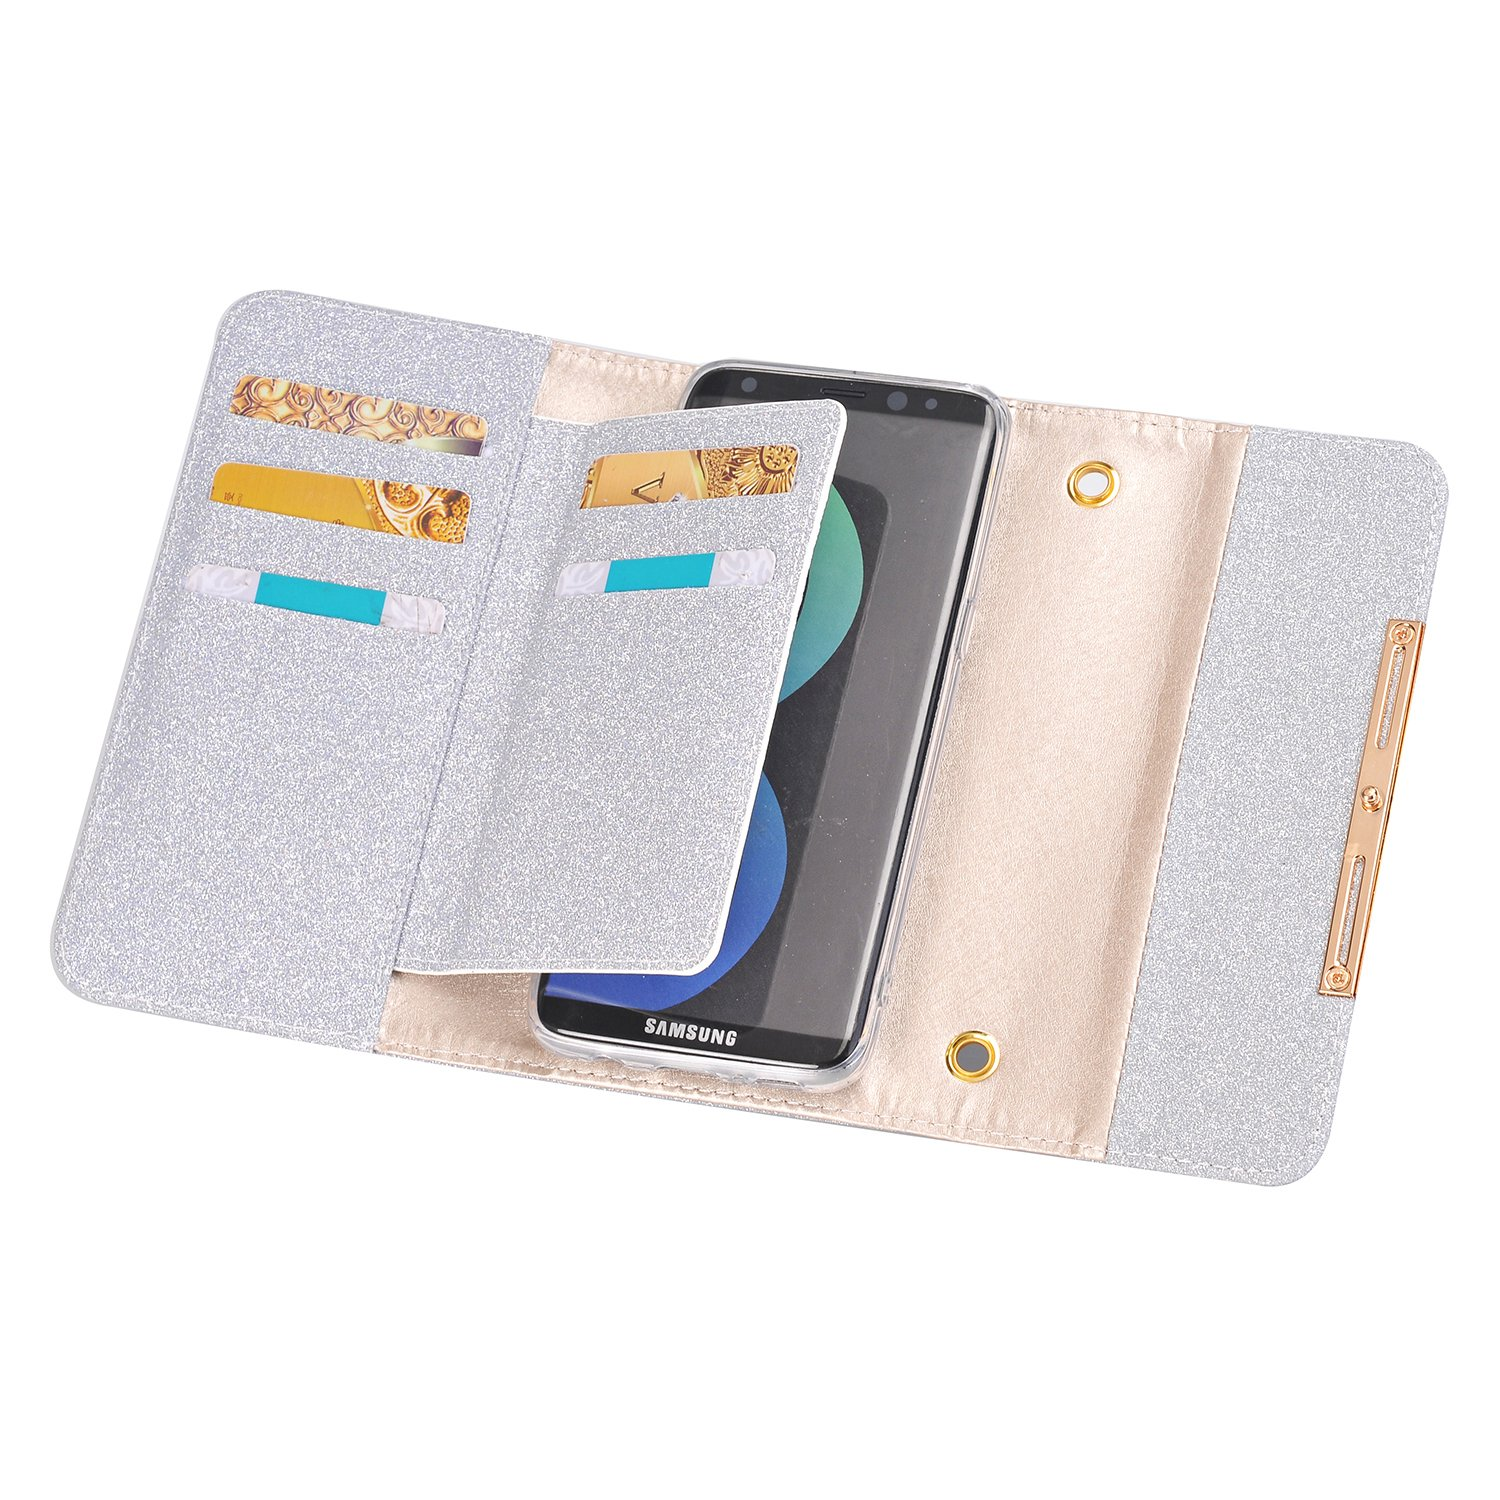 Galaxy S8 Wallet Phone Case,Women Fashion Bling Shiny PU Leather Flip Lady Multi Envelope Wristlet HandBag Clutch Wallet Case with Credit Card Holder for Galaxy S8(Grey) by KingTo